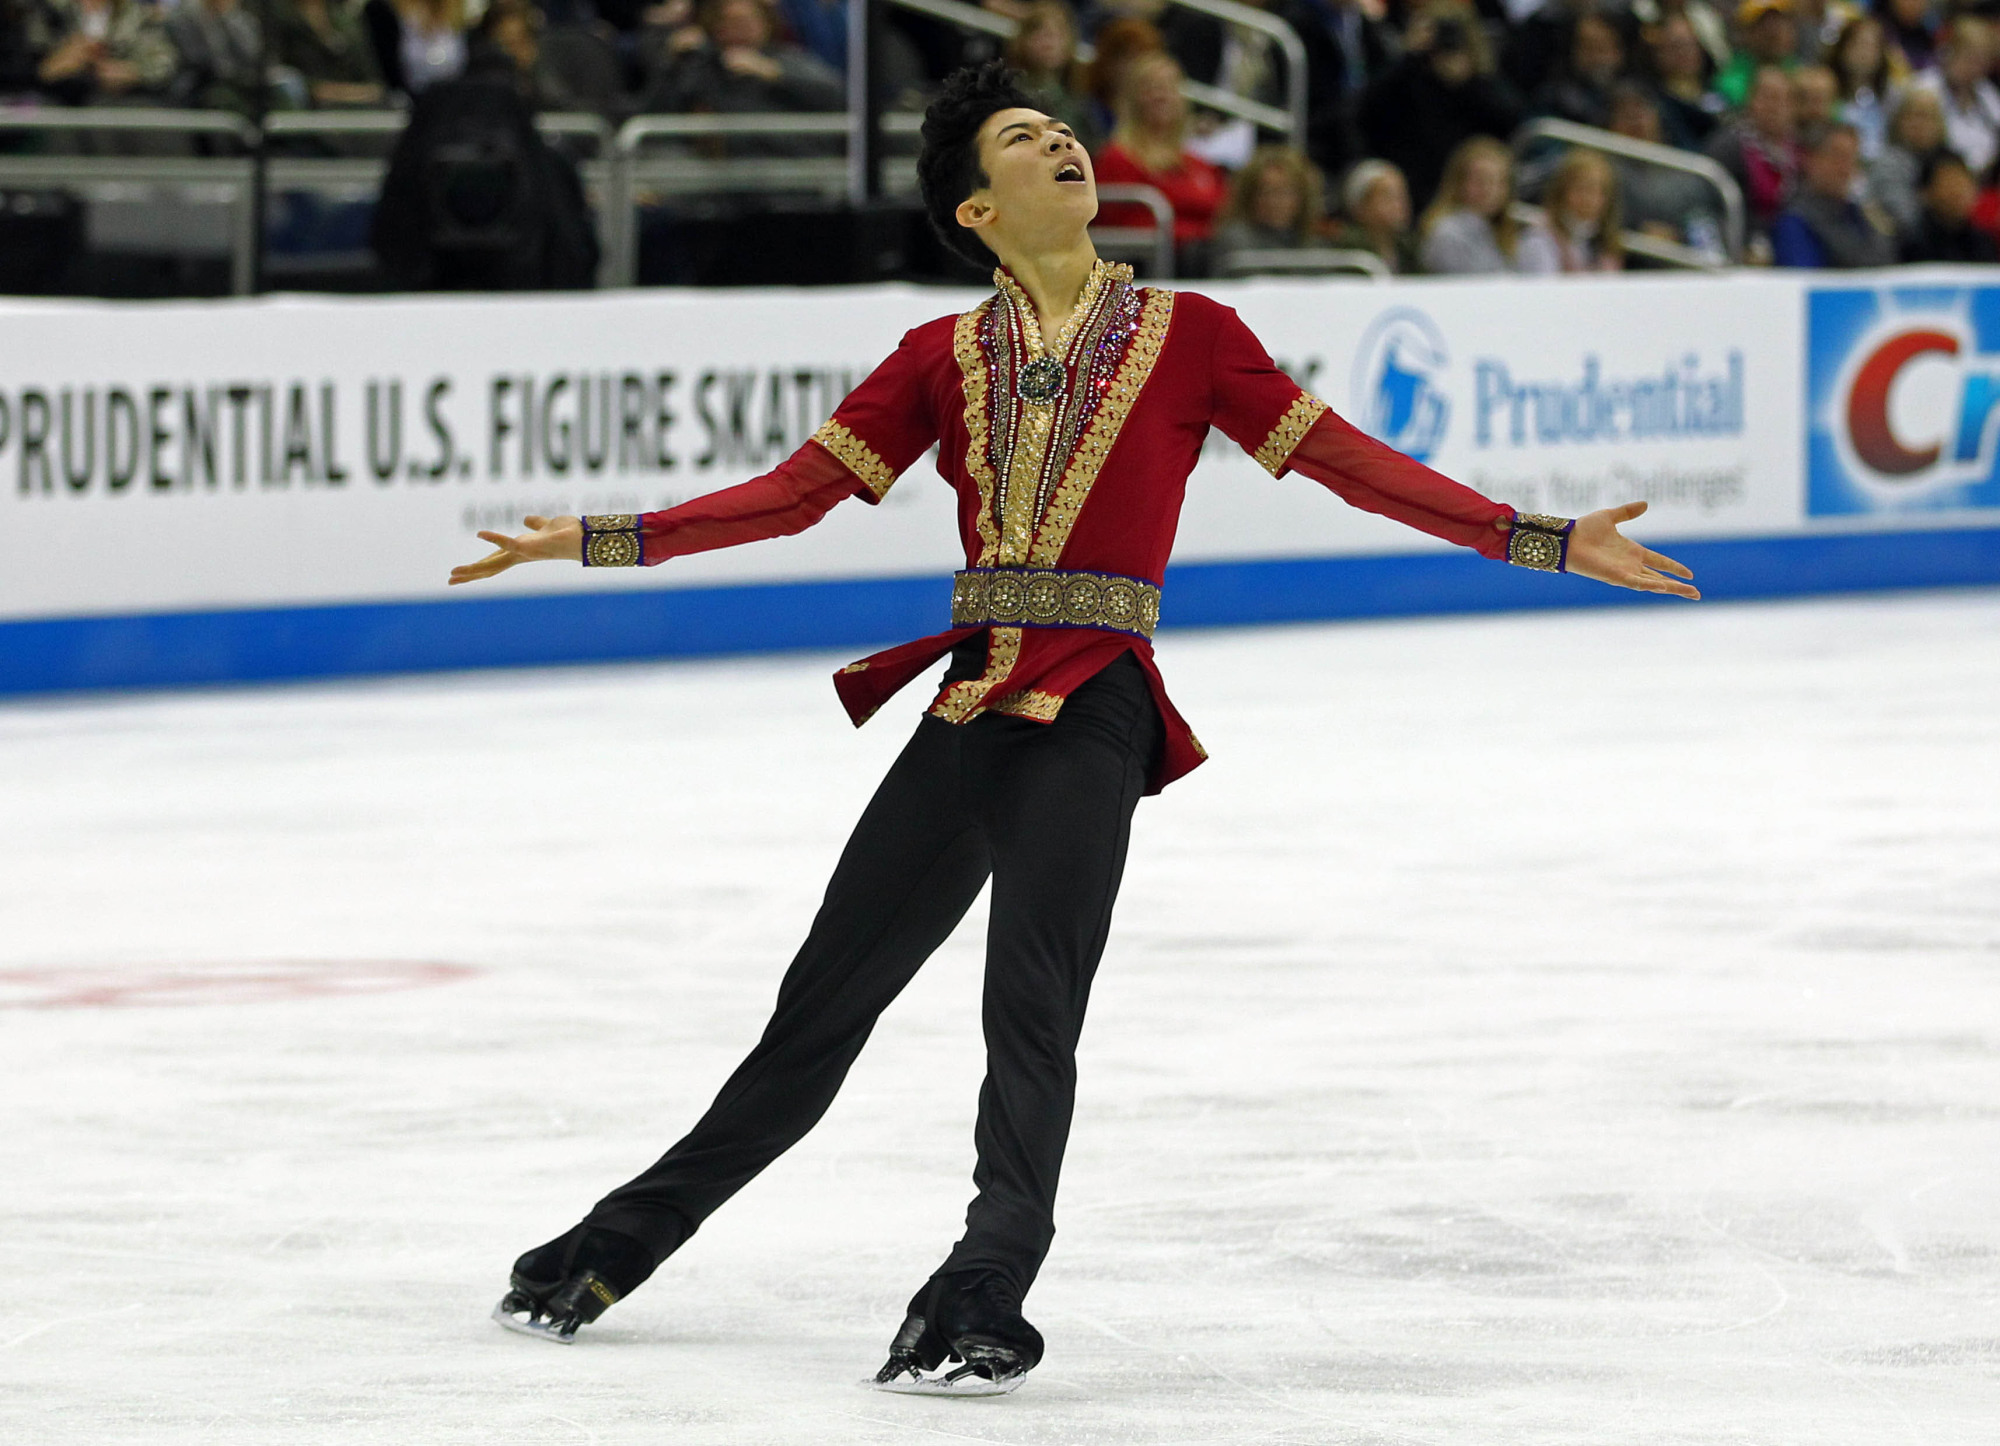 Nathan Chen cleanly landed five quadruple jumps during his free skate at the U.S. nationals on Sunday on the way to victory. | USA TODAY / VIA REUTERS